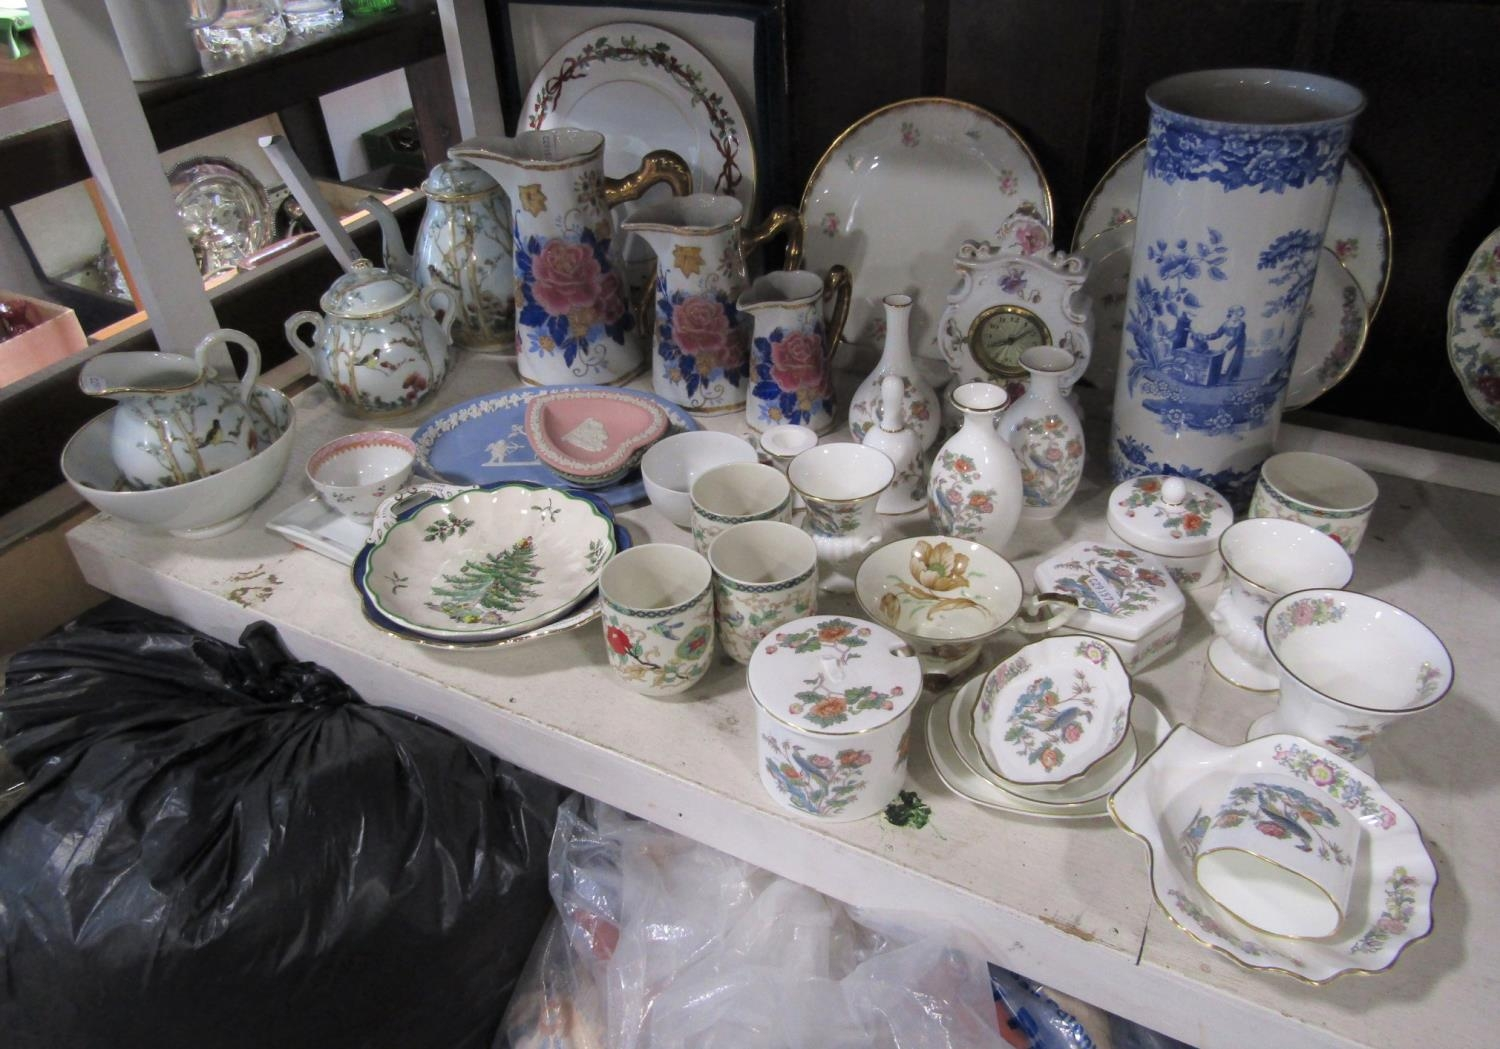 A collection of decorative ceramics including a Spode blue room collection girl at well pattern blue - Bild 2 aus 2